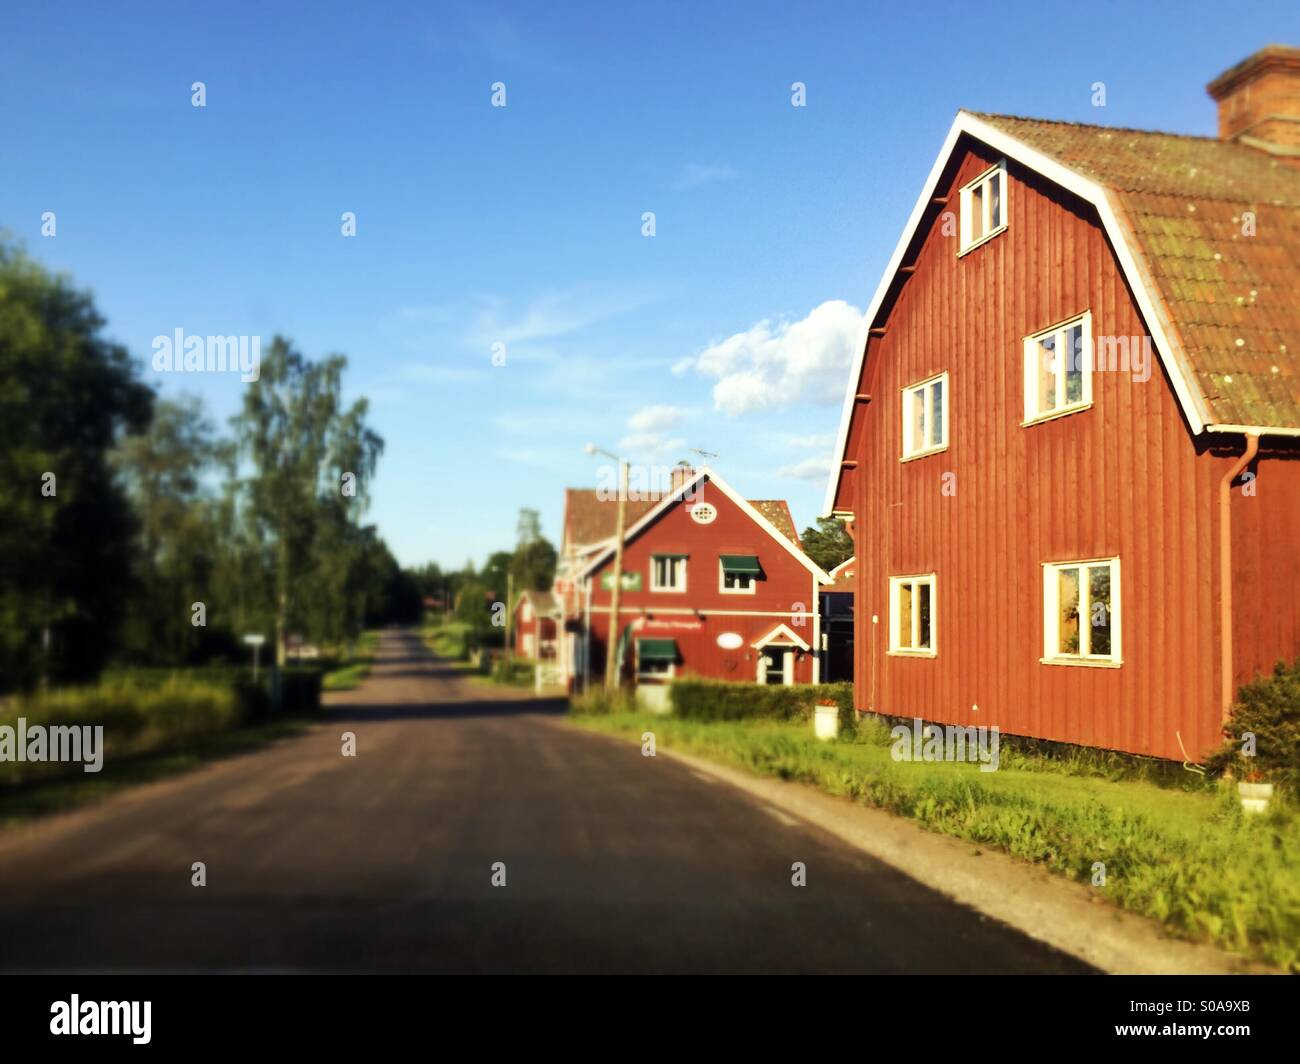 Traditional Falu red houses lining road in Tallberg, Dalarna, Sweden in summer - Stock Image